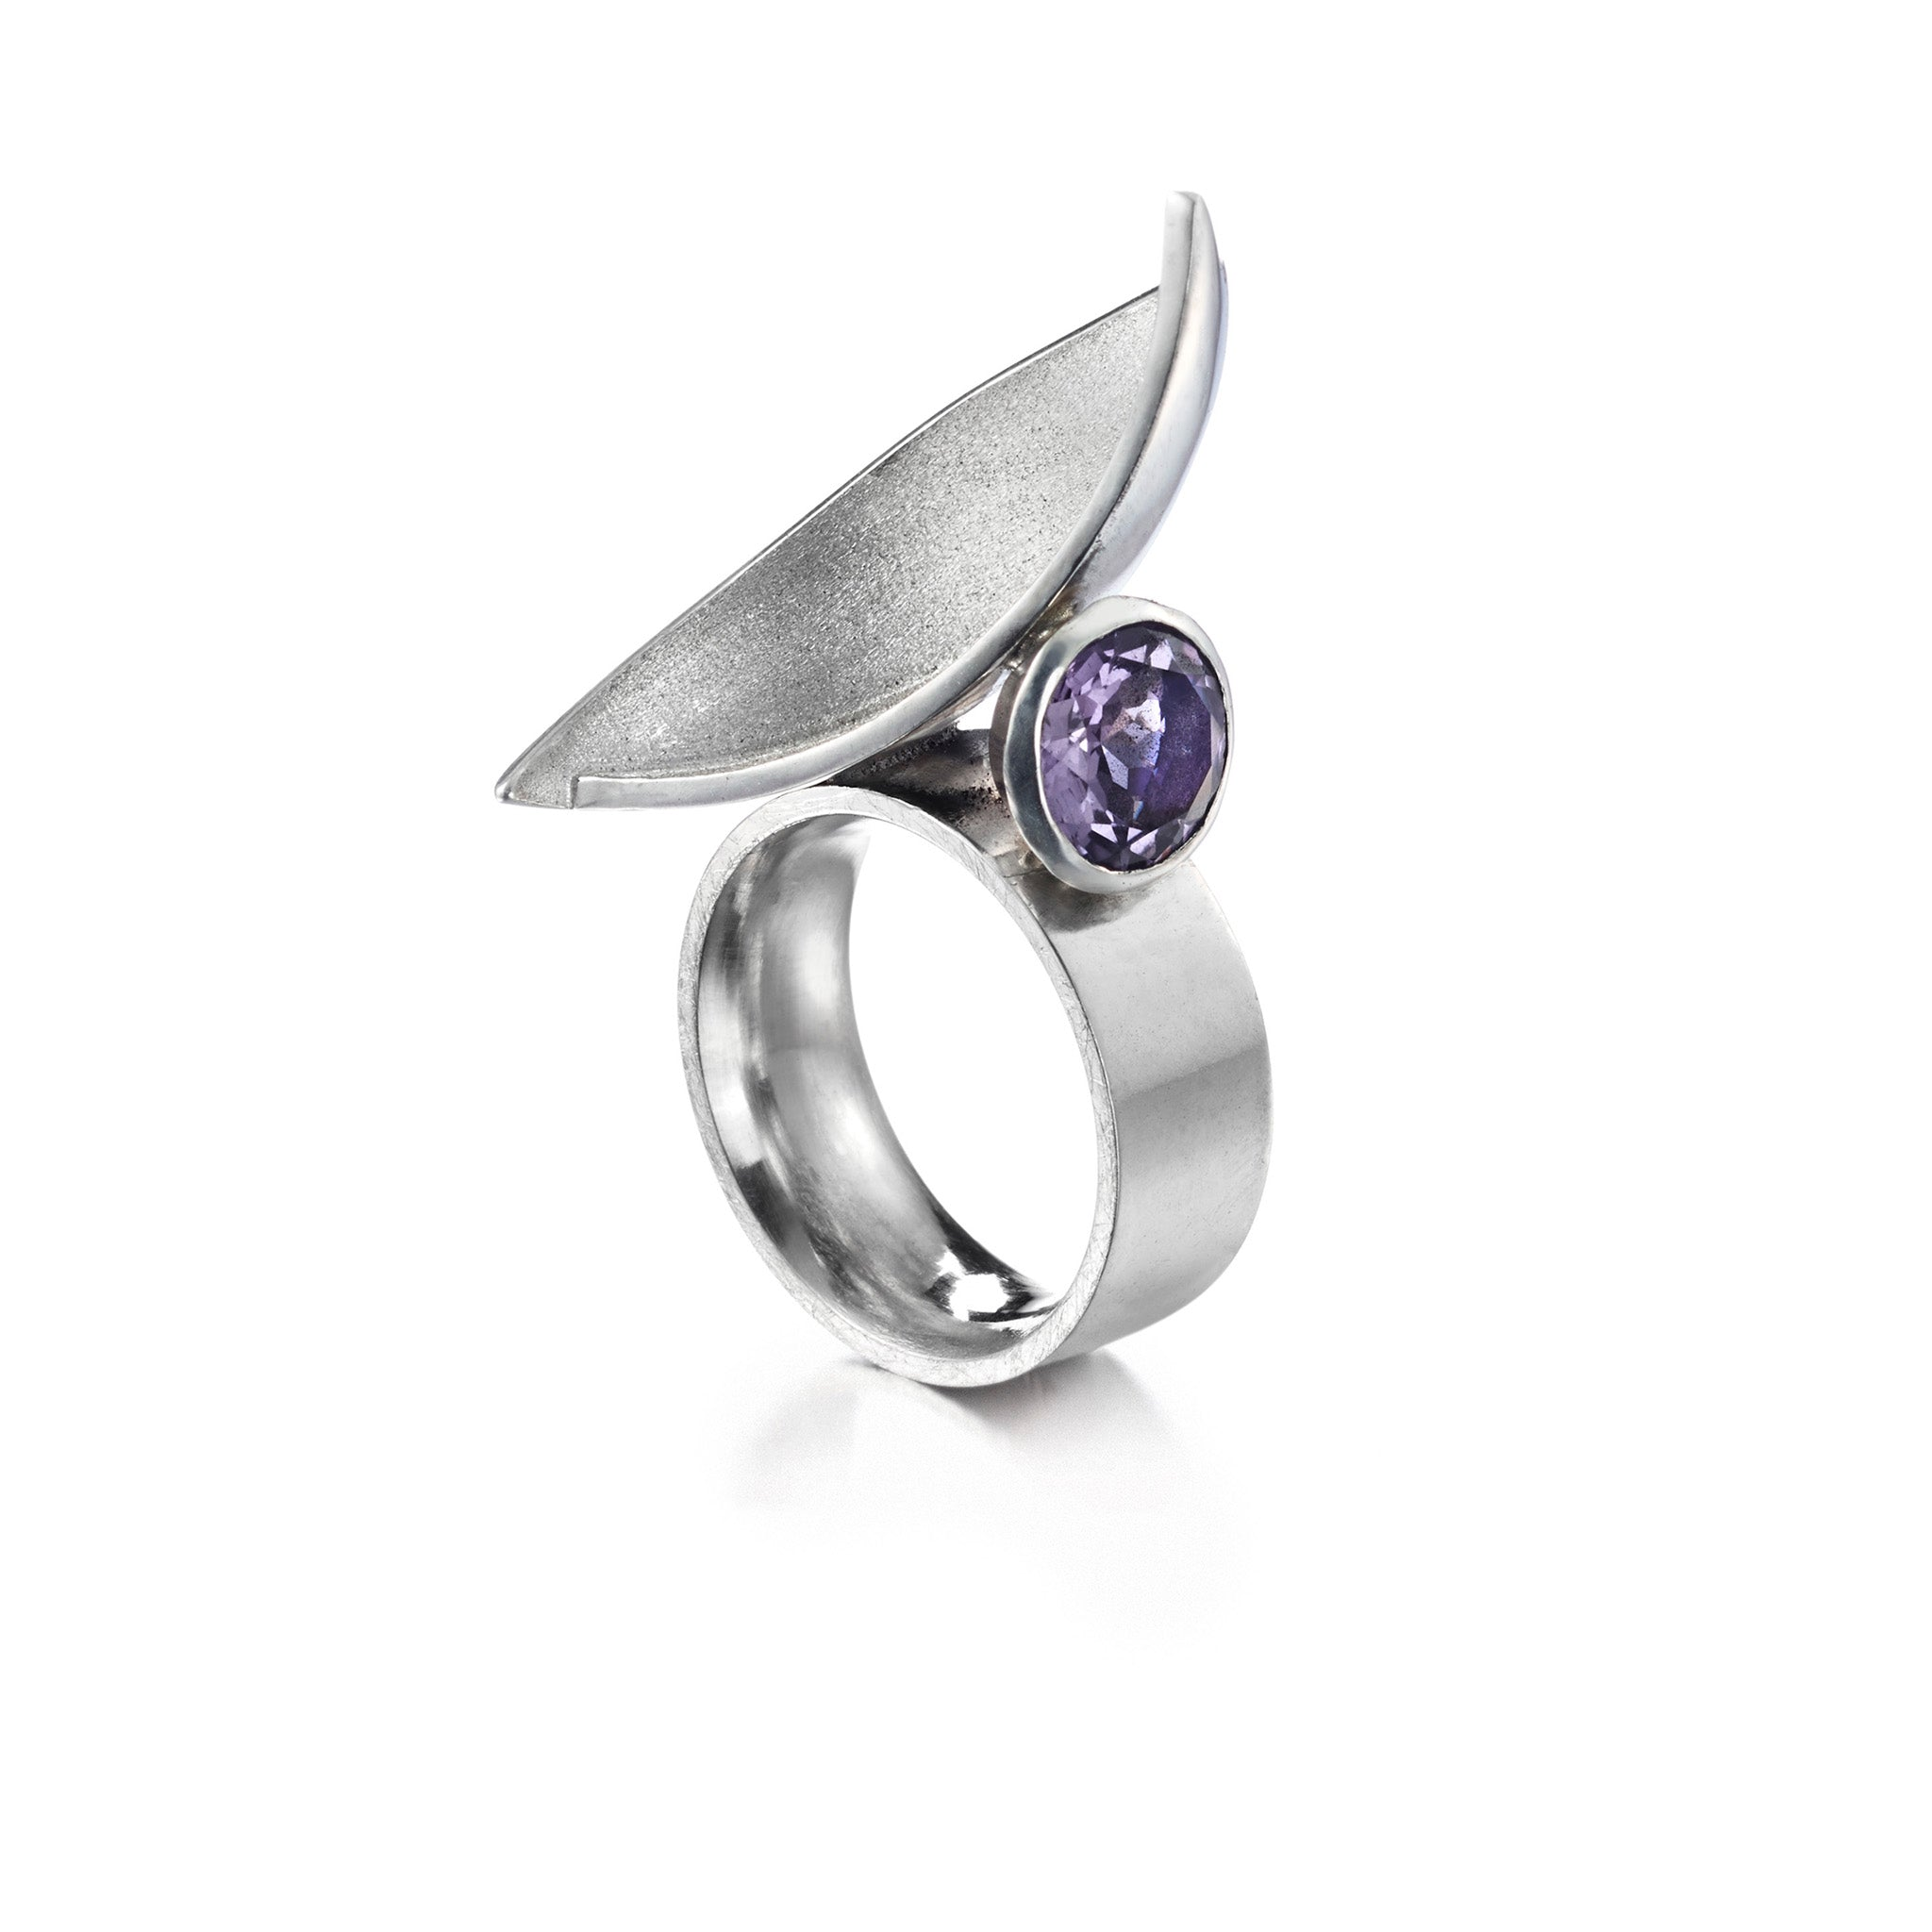 Heavy architectural sterling silver ring with faceted amethyst.